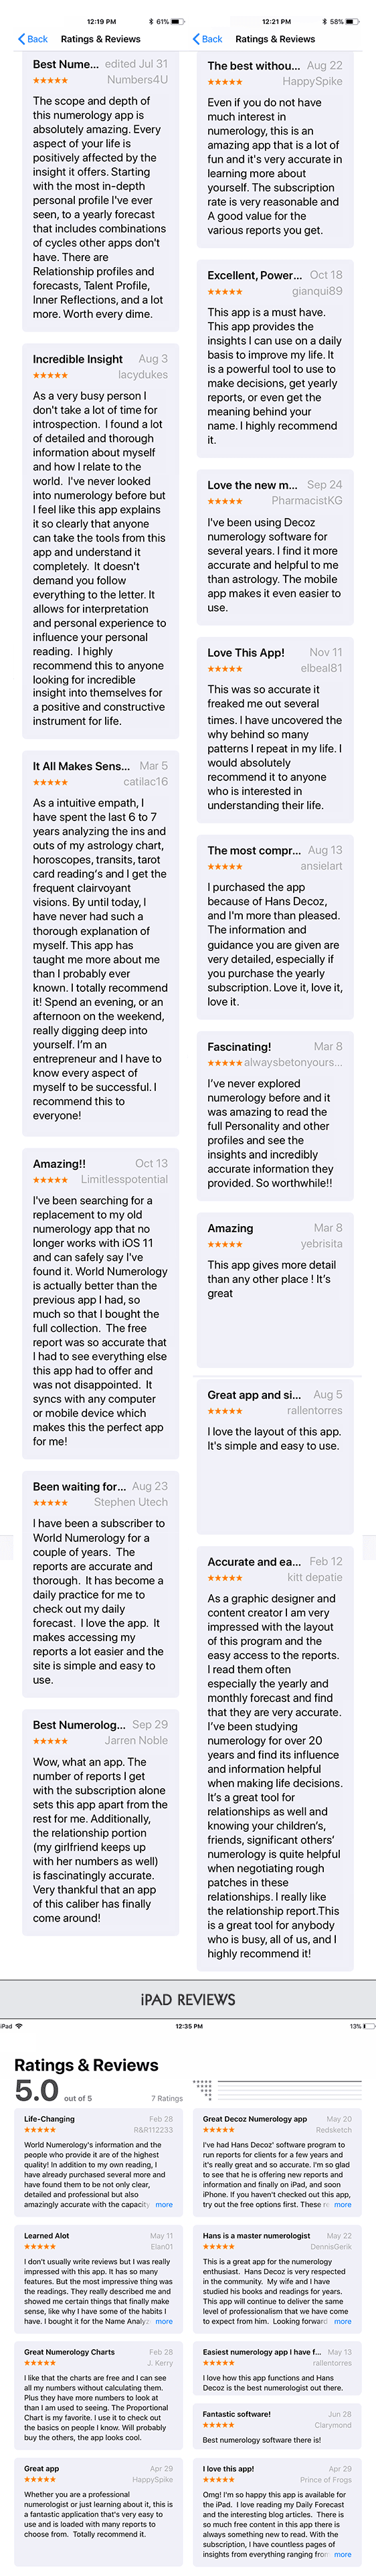 Reviews for the World Numerology App for iPhone and iPad, on iTunes - 5 star and 4.8 star ratings. Best numerology app available